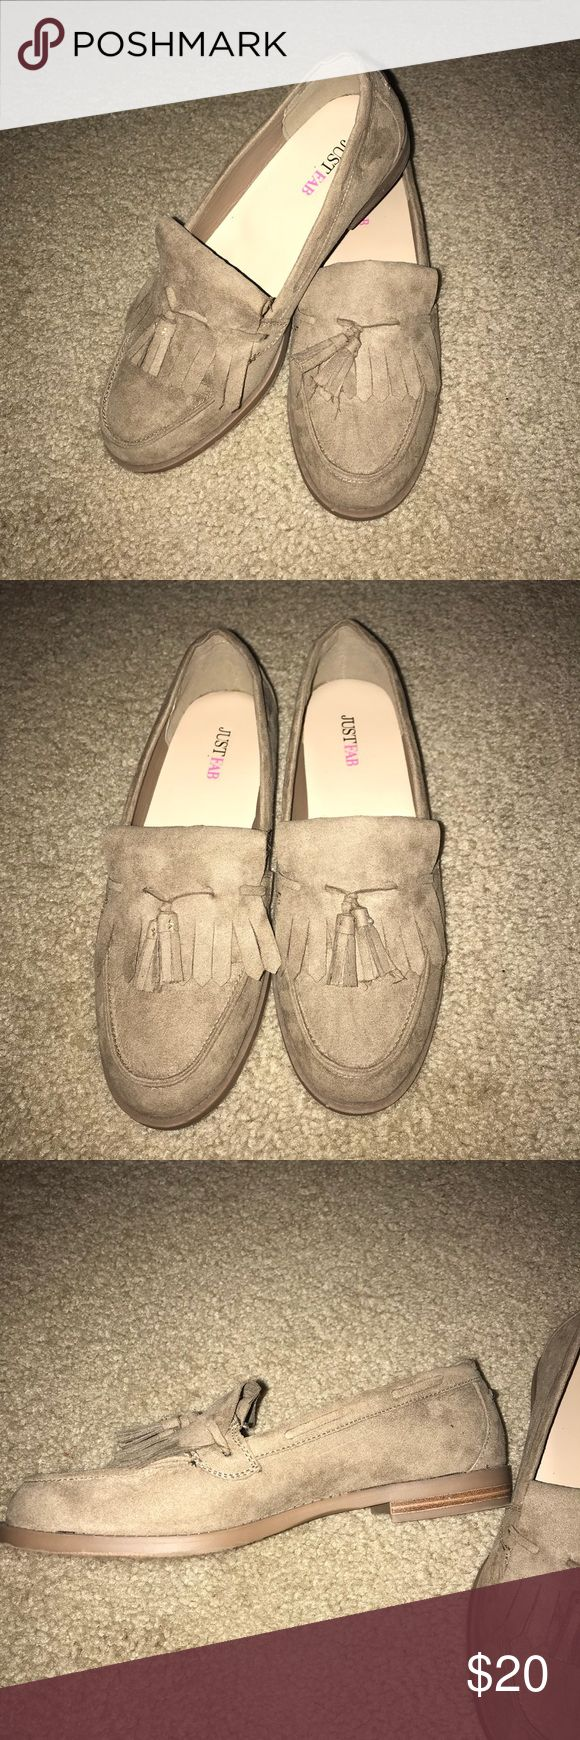 Just Fab Tan Loafers Size 8 Just Fab Tan Loafers Size 8, only worn once! In great condition, super comfy and stylish for any work day outfit. Outside is a tan suede like material with tassels. JustFab Shoes Flats & Loafers